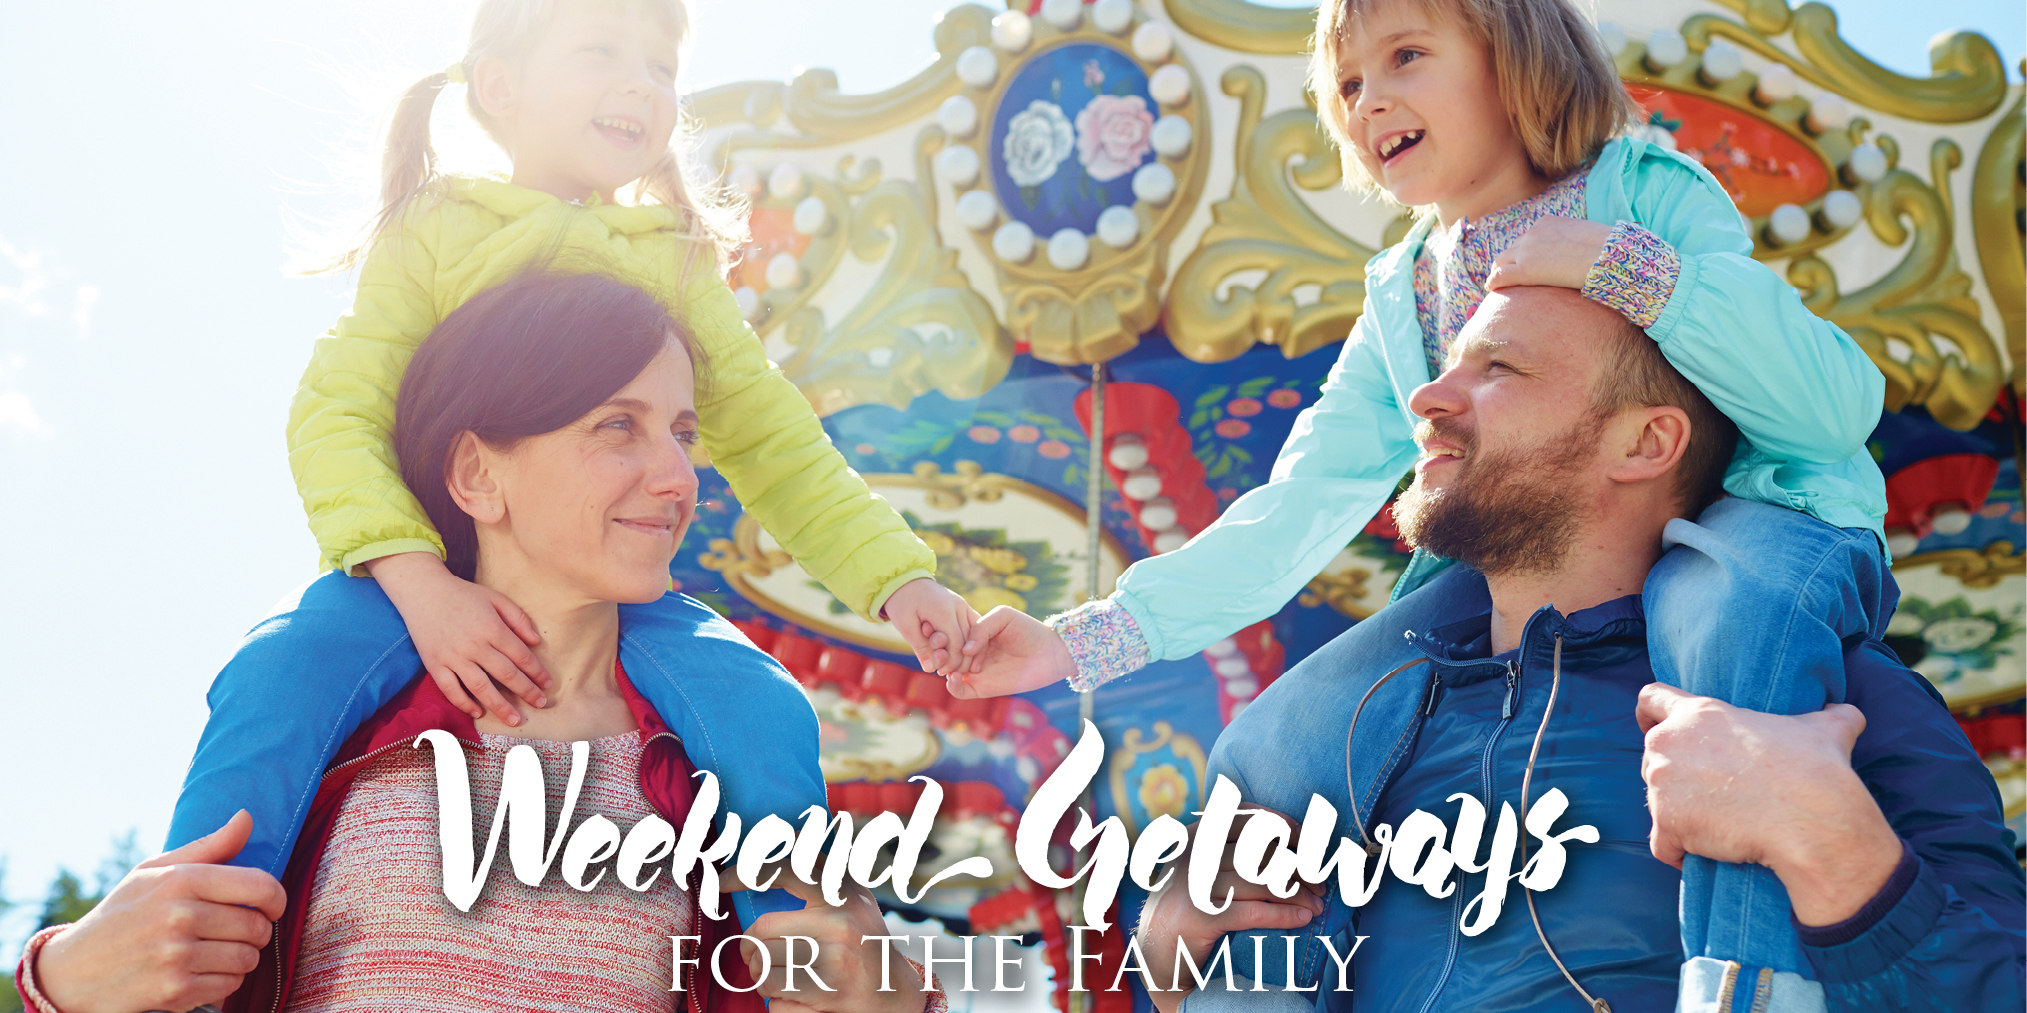 Weekend Getaways for the Family